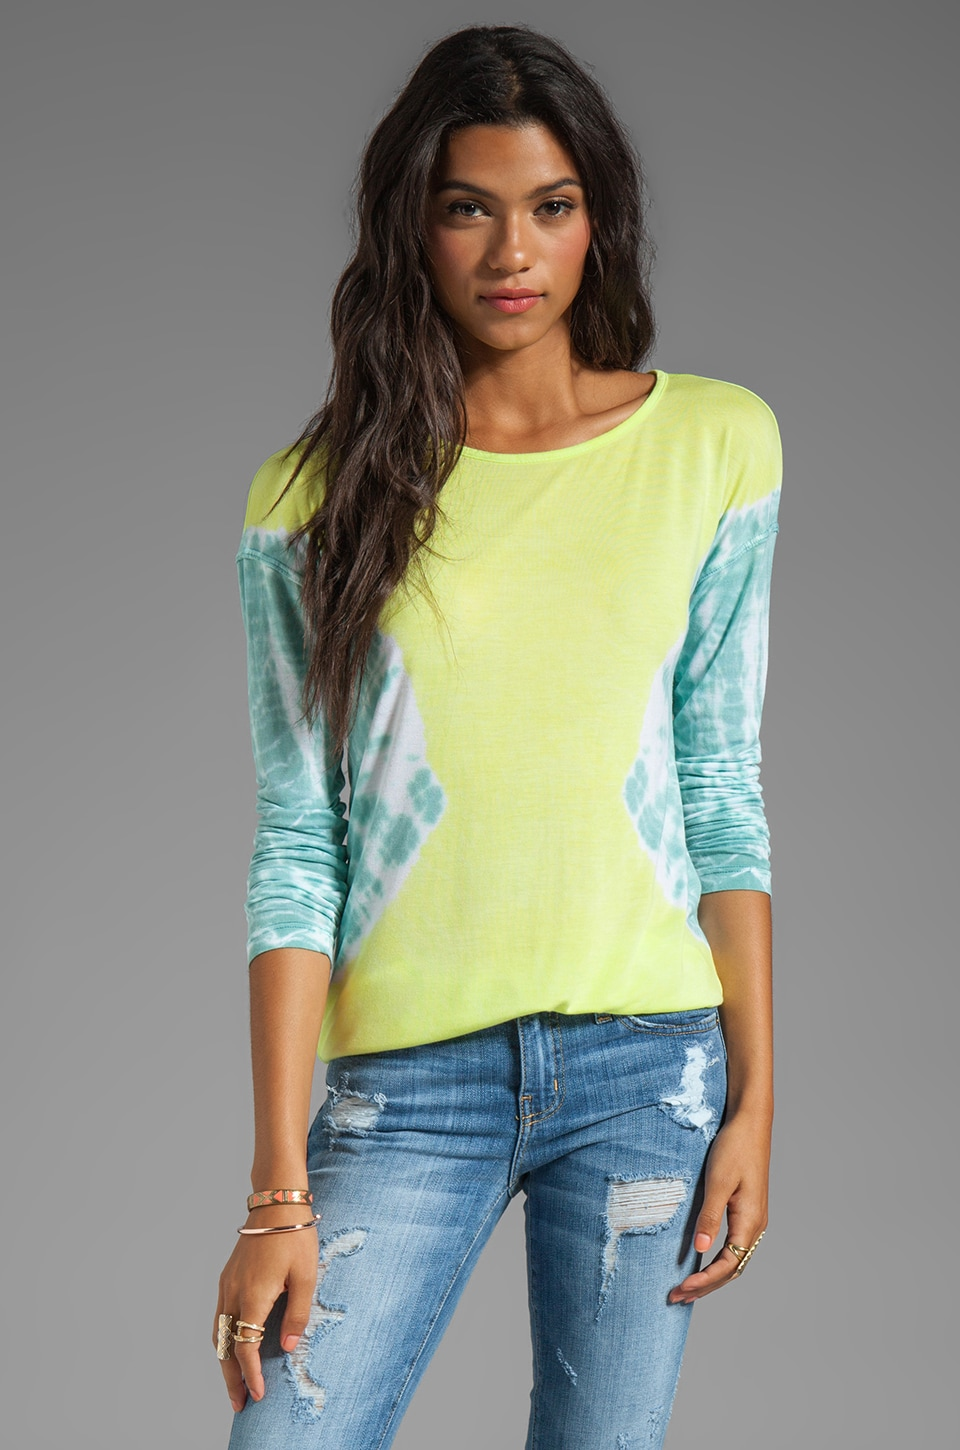 WOODLEIGH Kyra V-Back Long Sleeve Tie Dye Top in Chartreuse